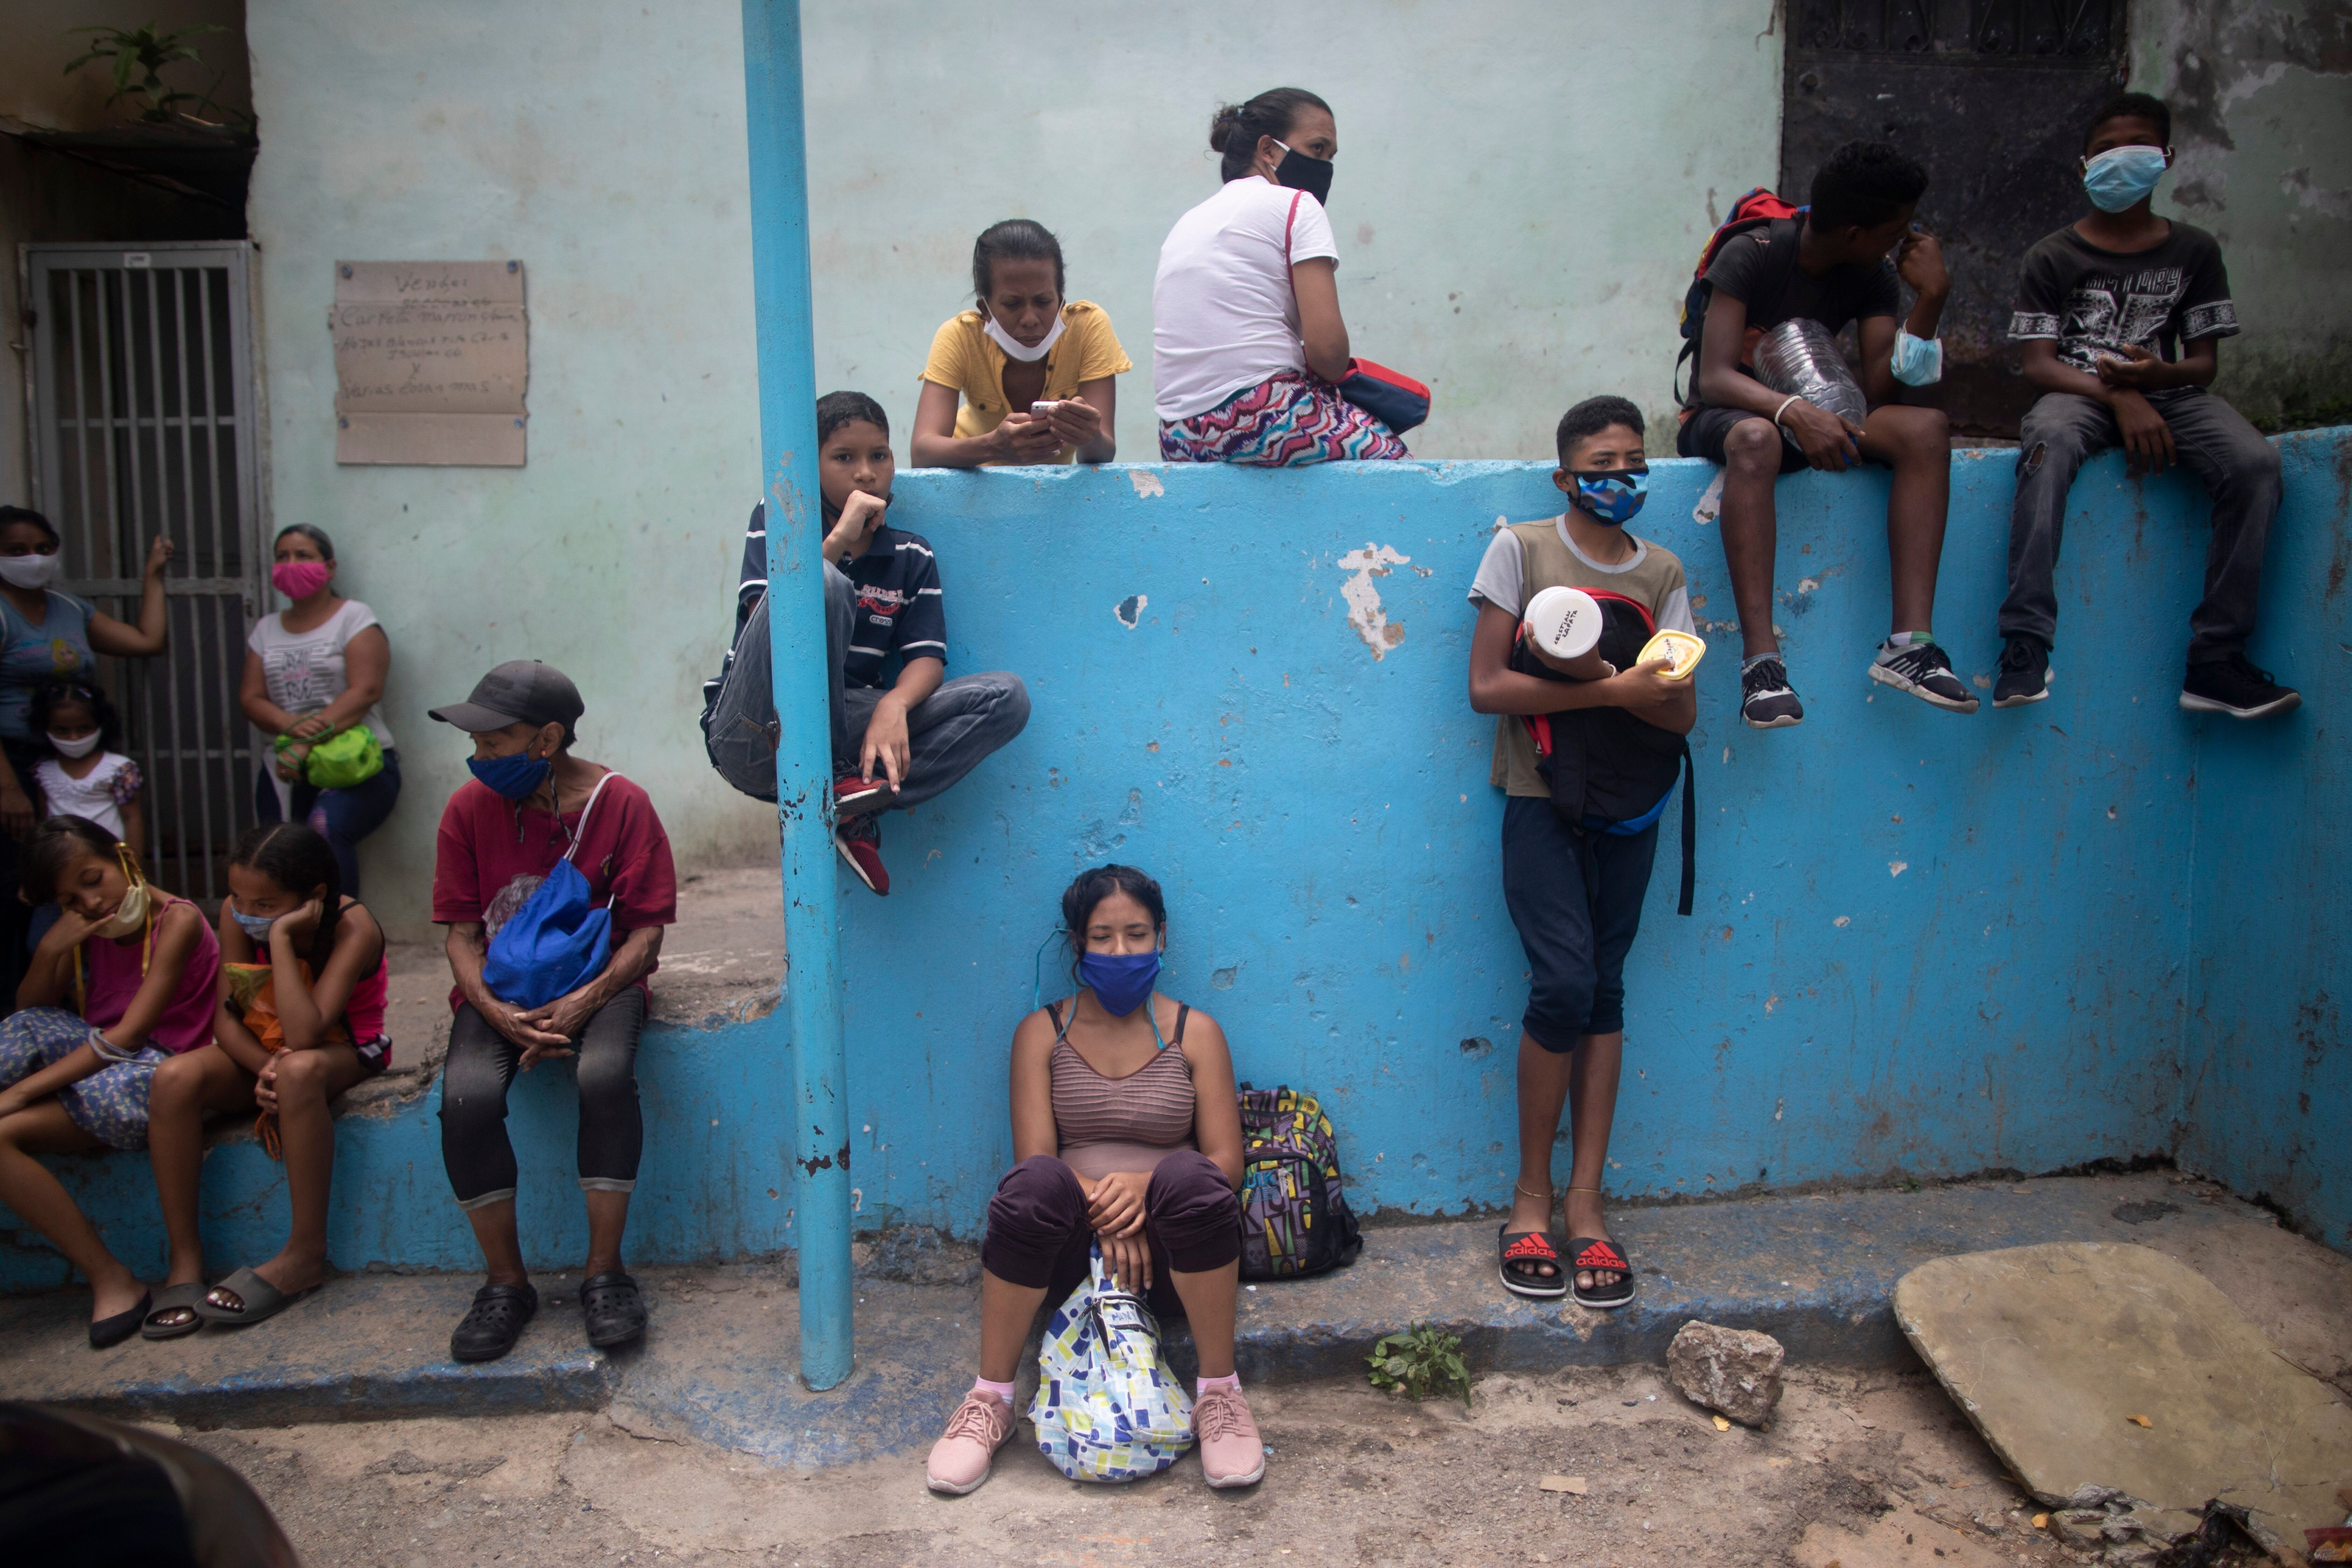 Residents wearing protective face masks wait outside a soup kitchen to receive pack-and-go lunches in the Petare neighborhood